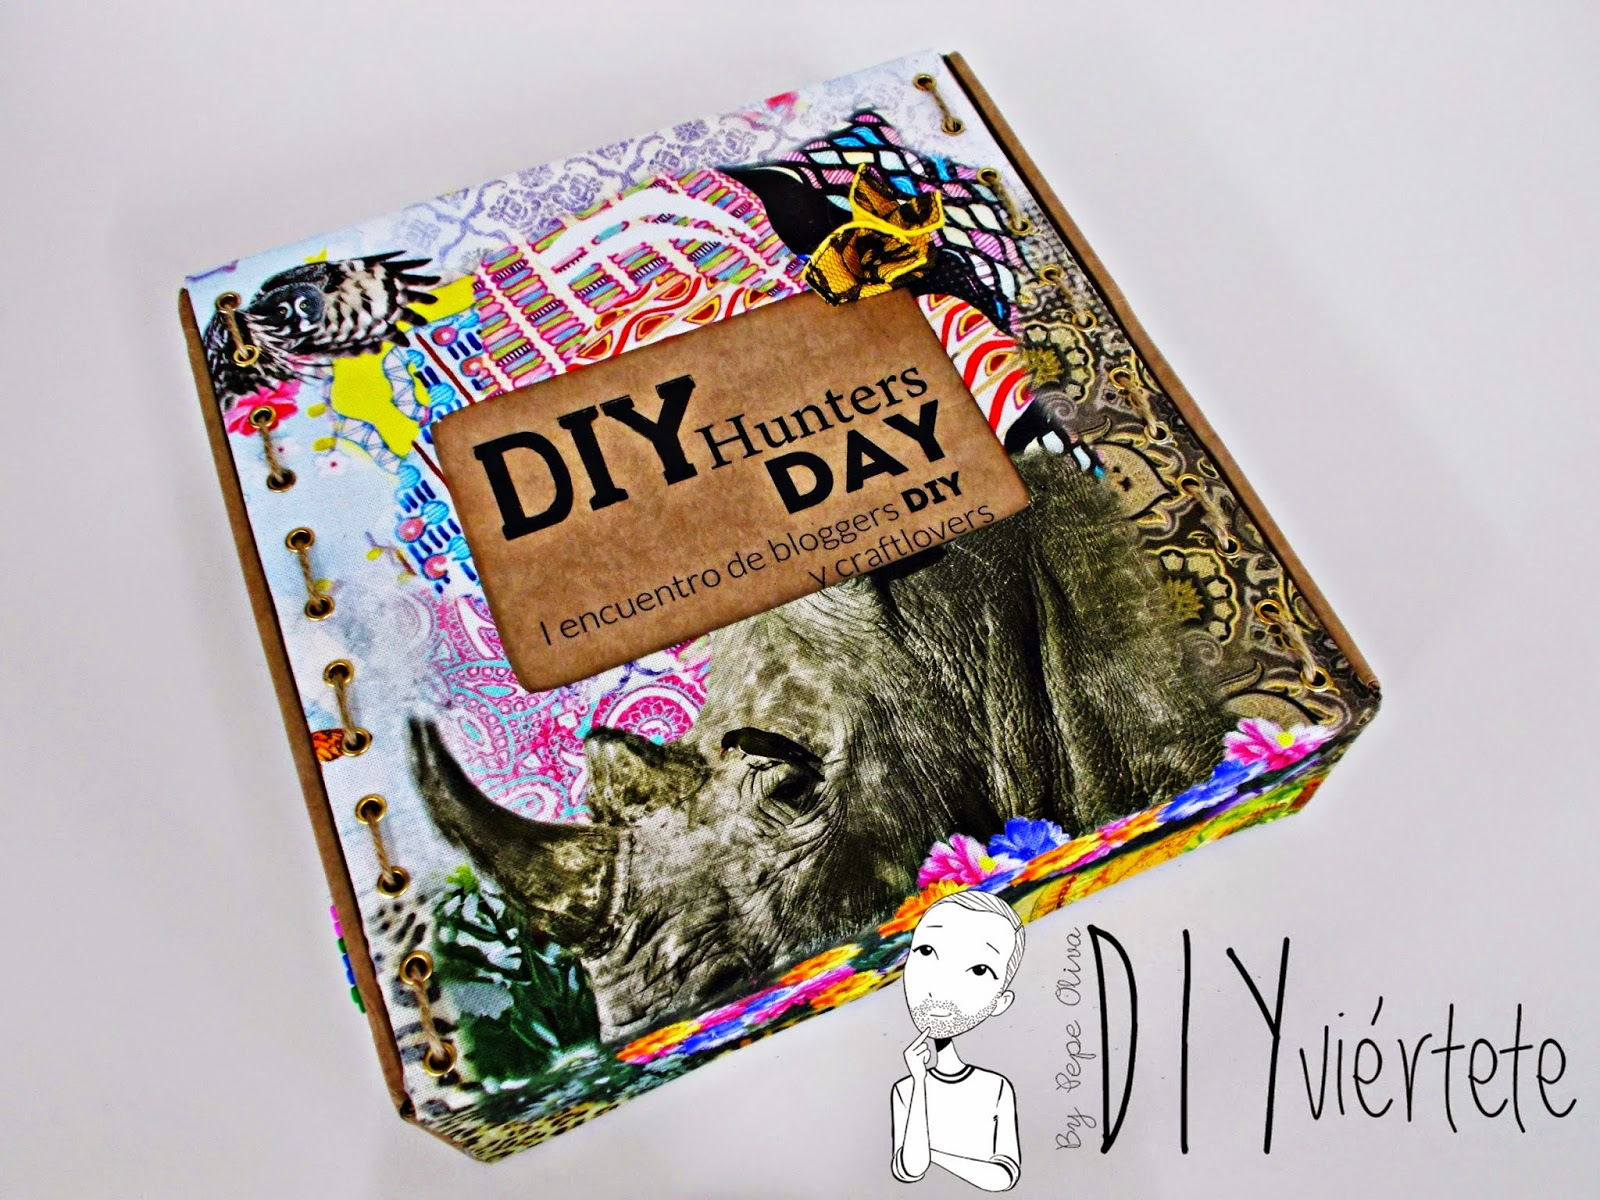 DIY-Do It Yourself-caja-cartón-selfpackaging-customizar-handbox-yodona-diyhuntersday-craftlovers-9